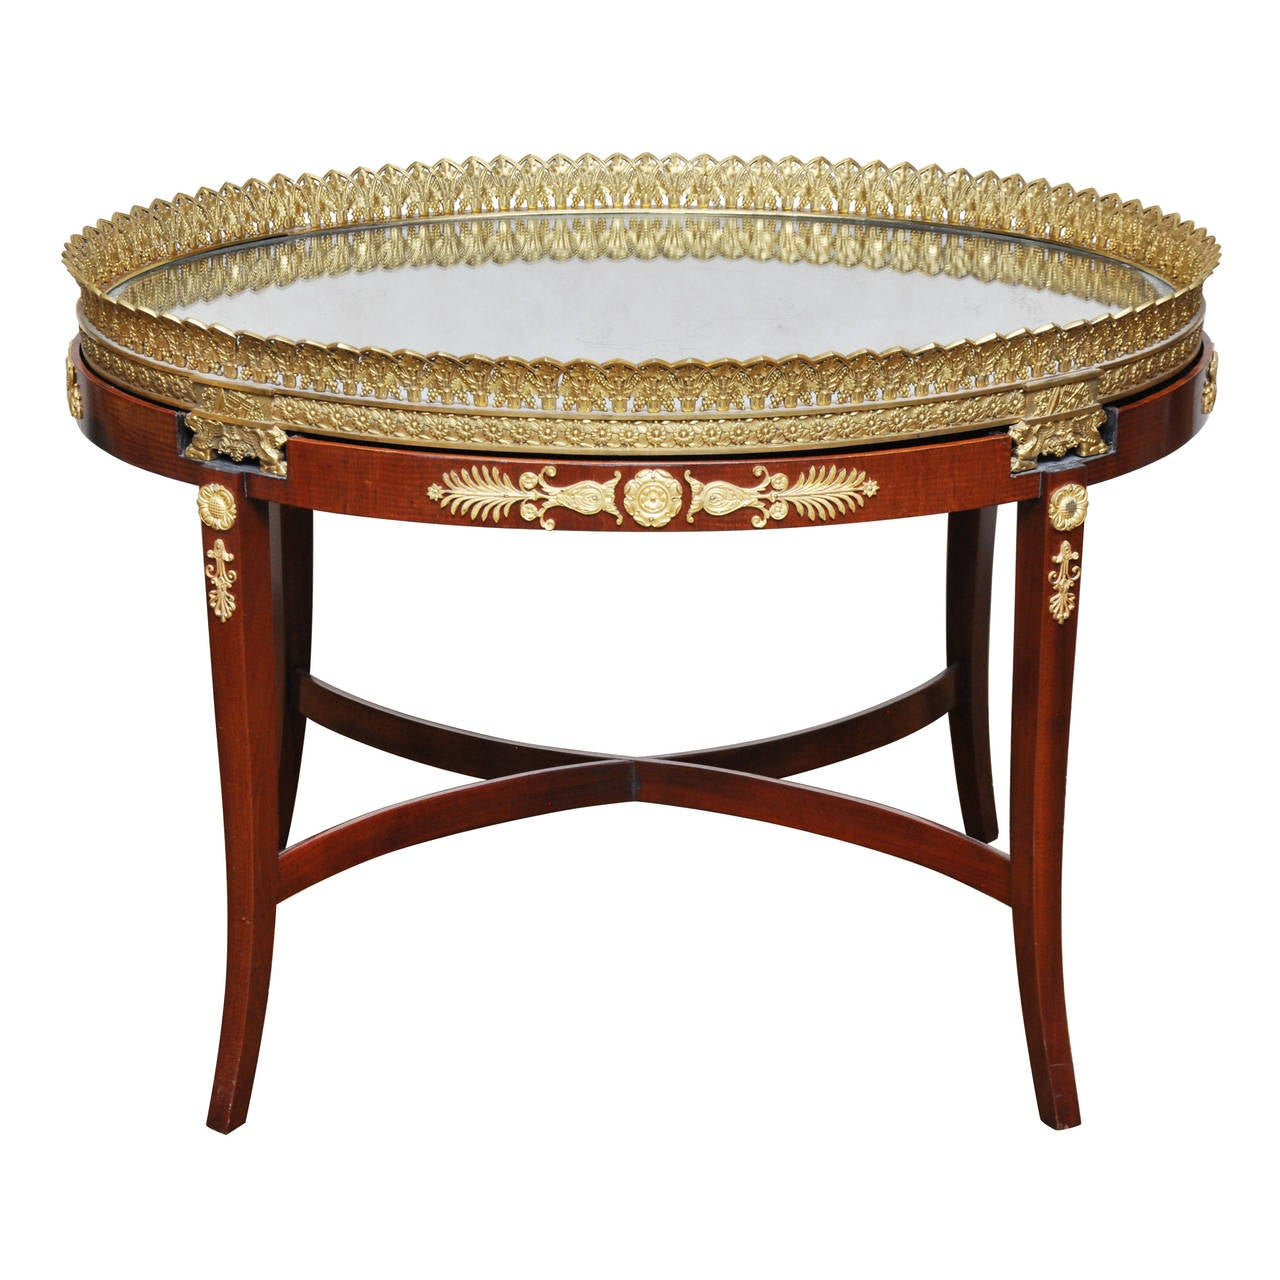 French empire plateau coffee table for sale at 1stdibs for Plateau table